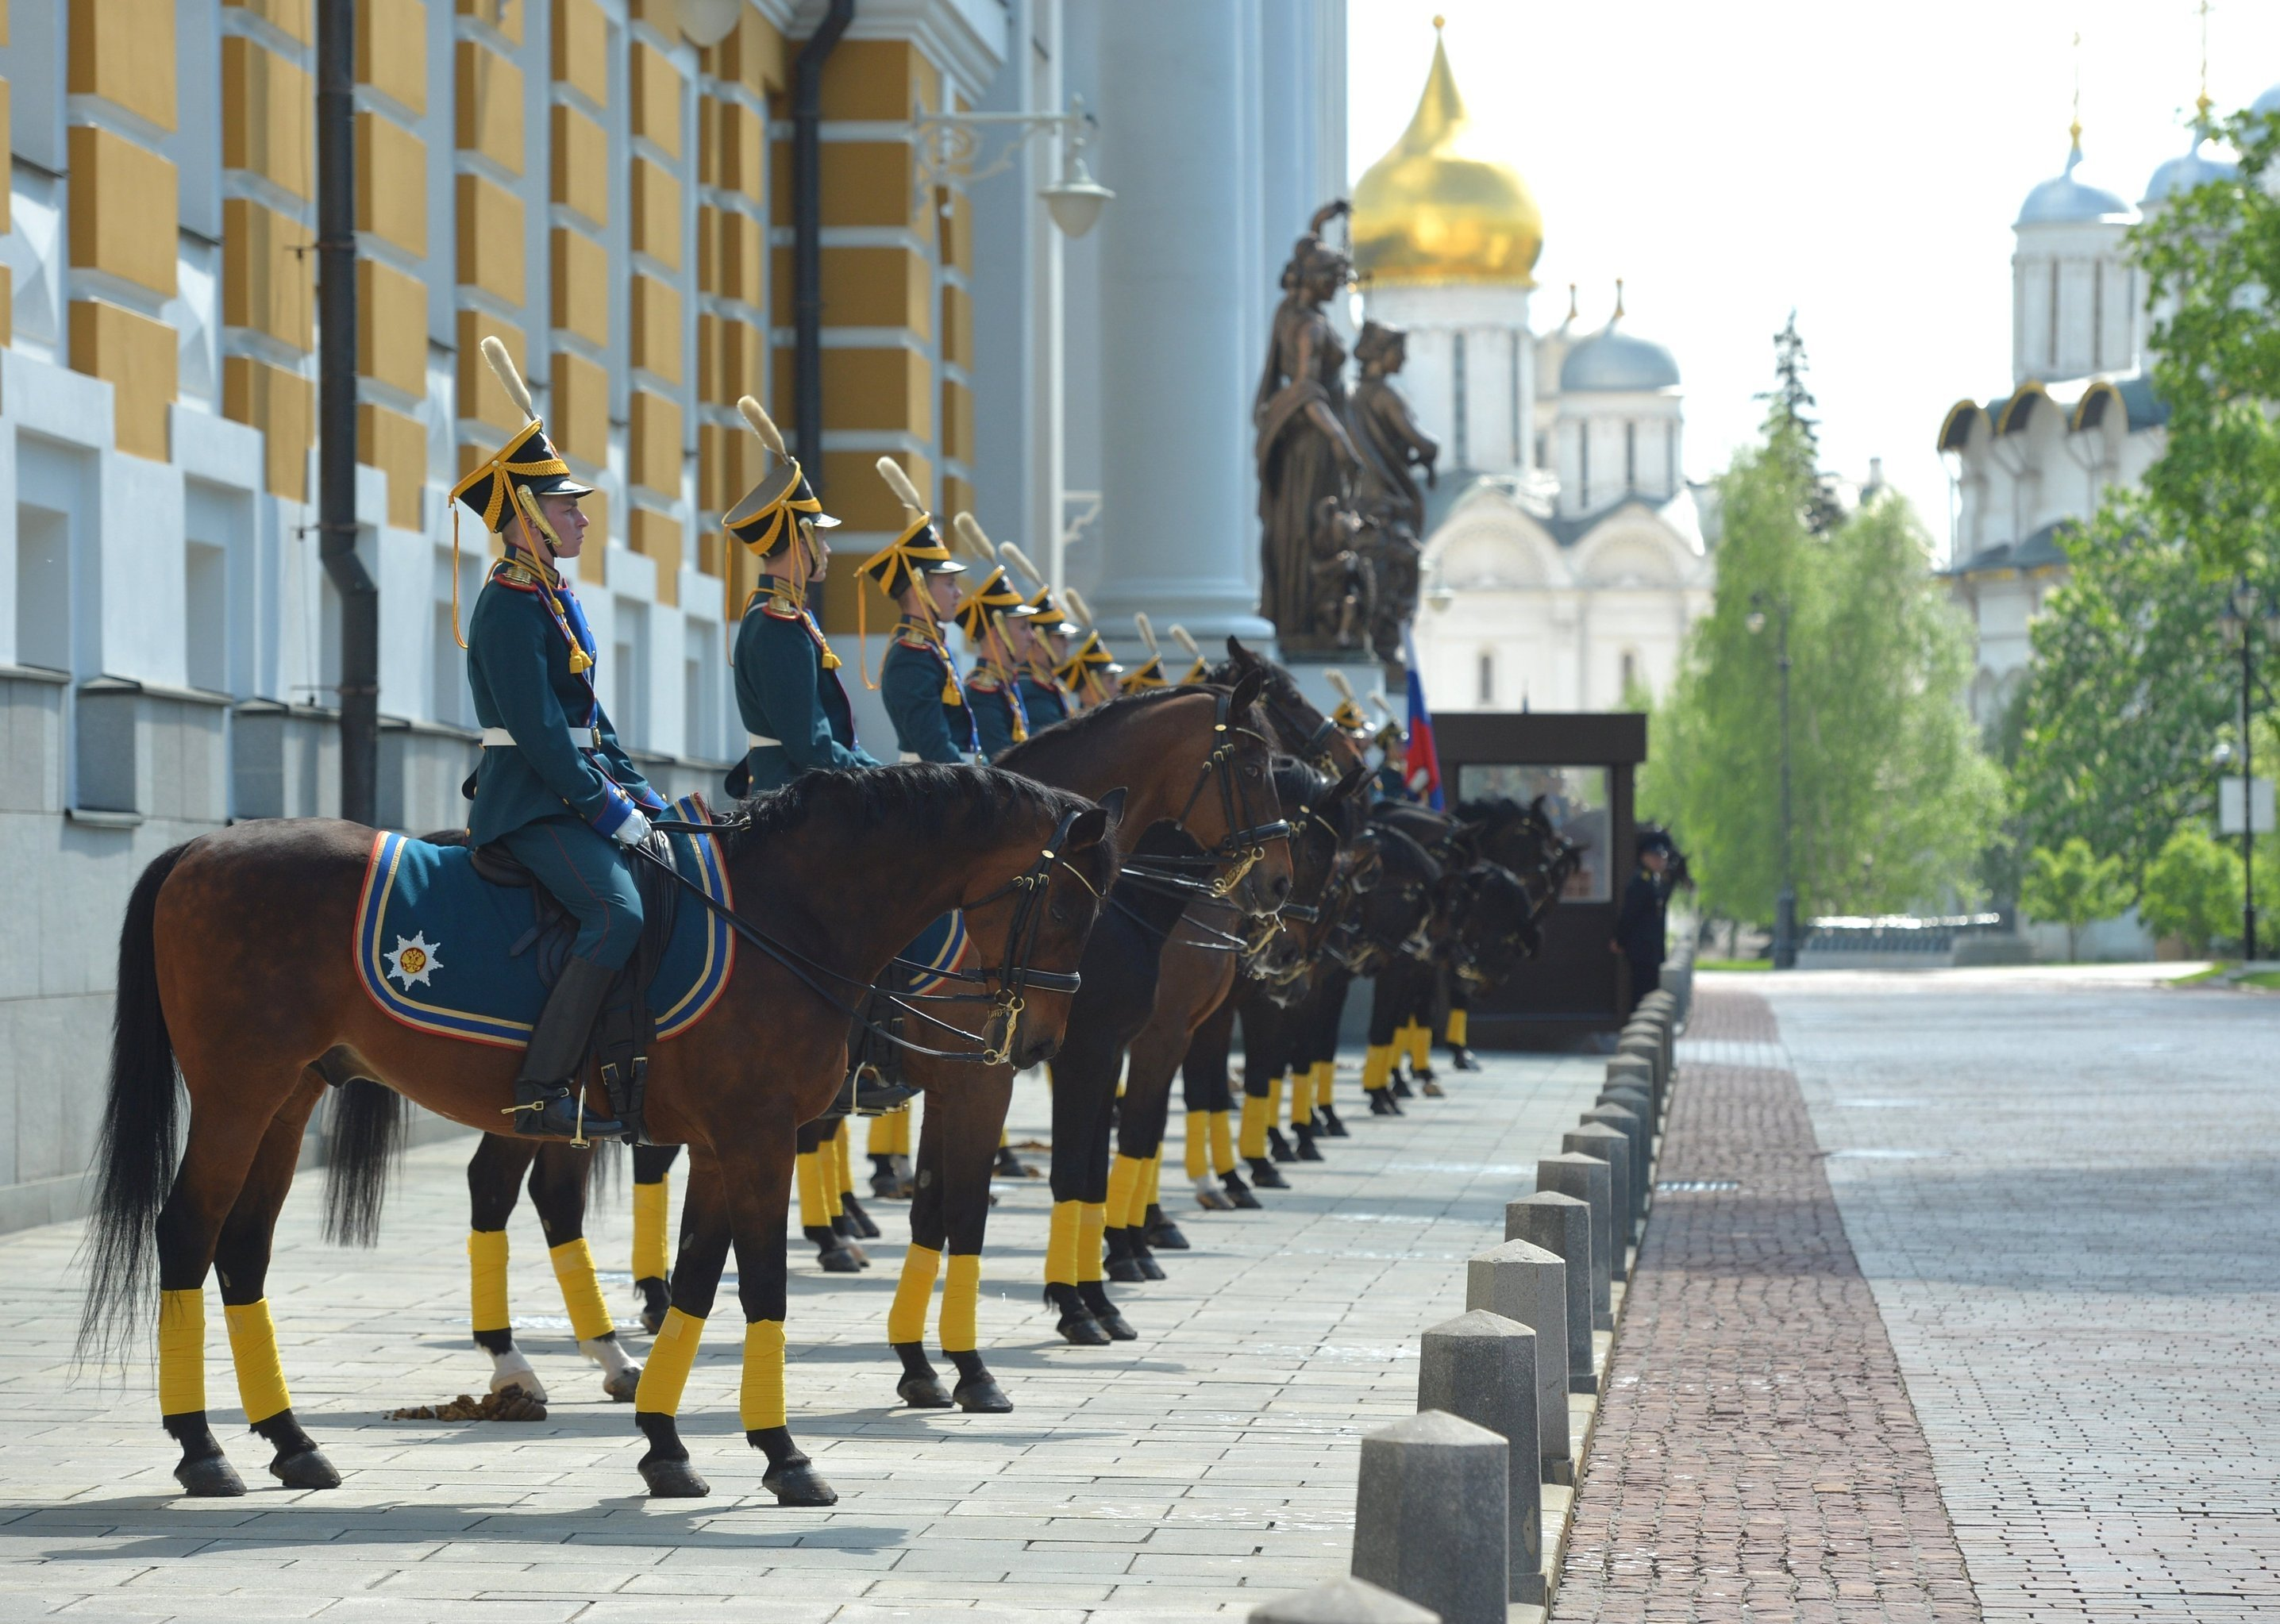 Mounted personnel of the Presidential Regiment at a presentation of a letter of commendation from the Supreme Commander-in-Chief of the Russian Armed Forces to the Kremlin Regiment of the Service of Moscow Kremlin's Commandant.